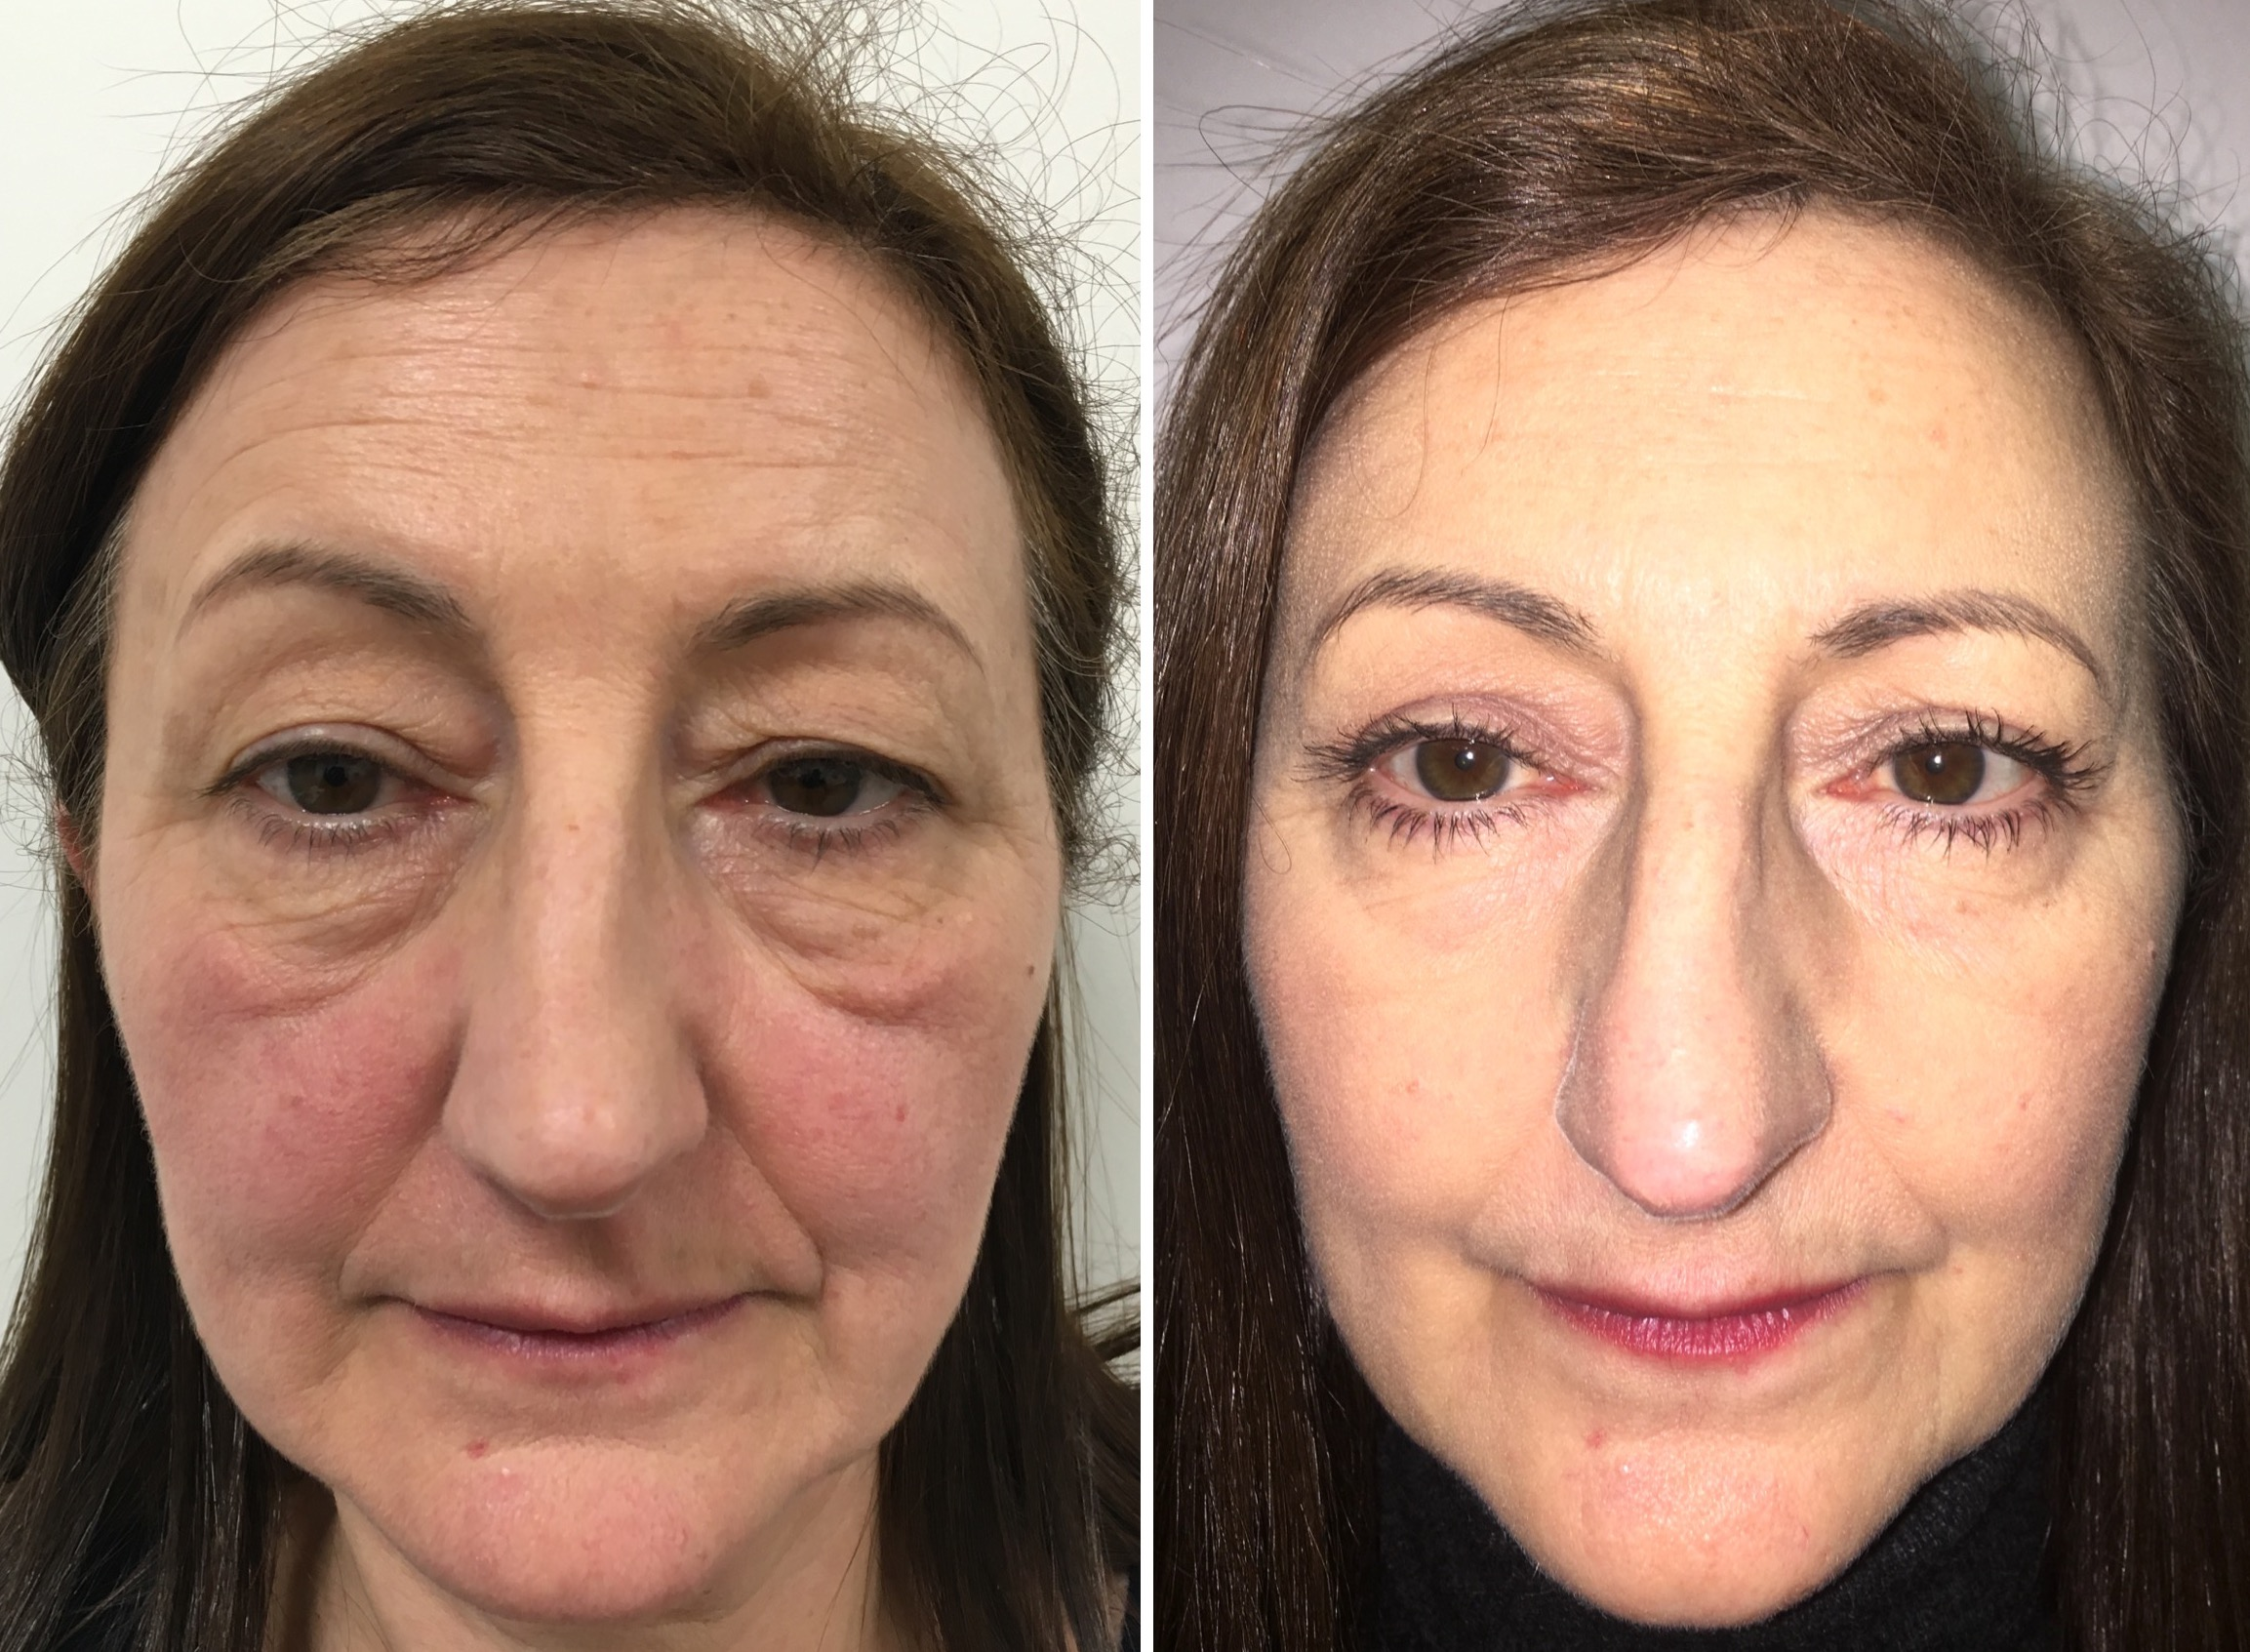 Before and 6 months after upper and lower eyelid blepharoplasty